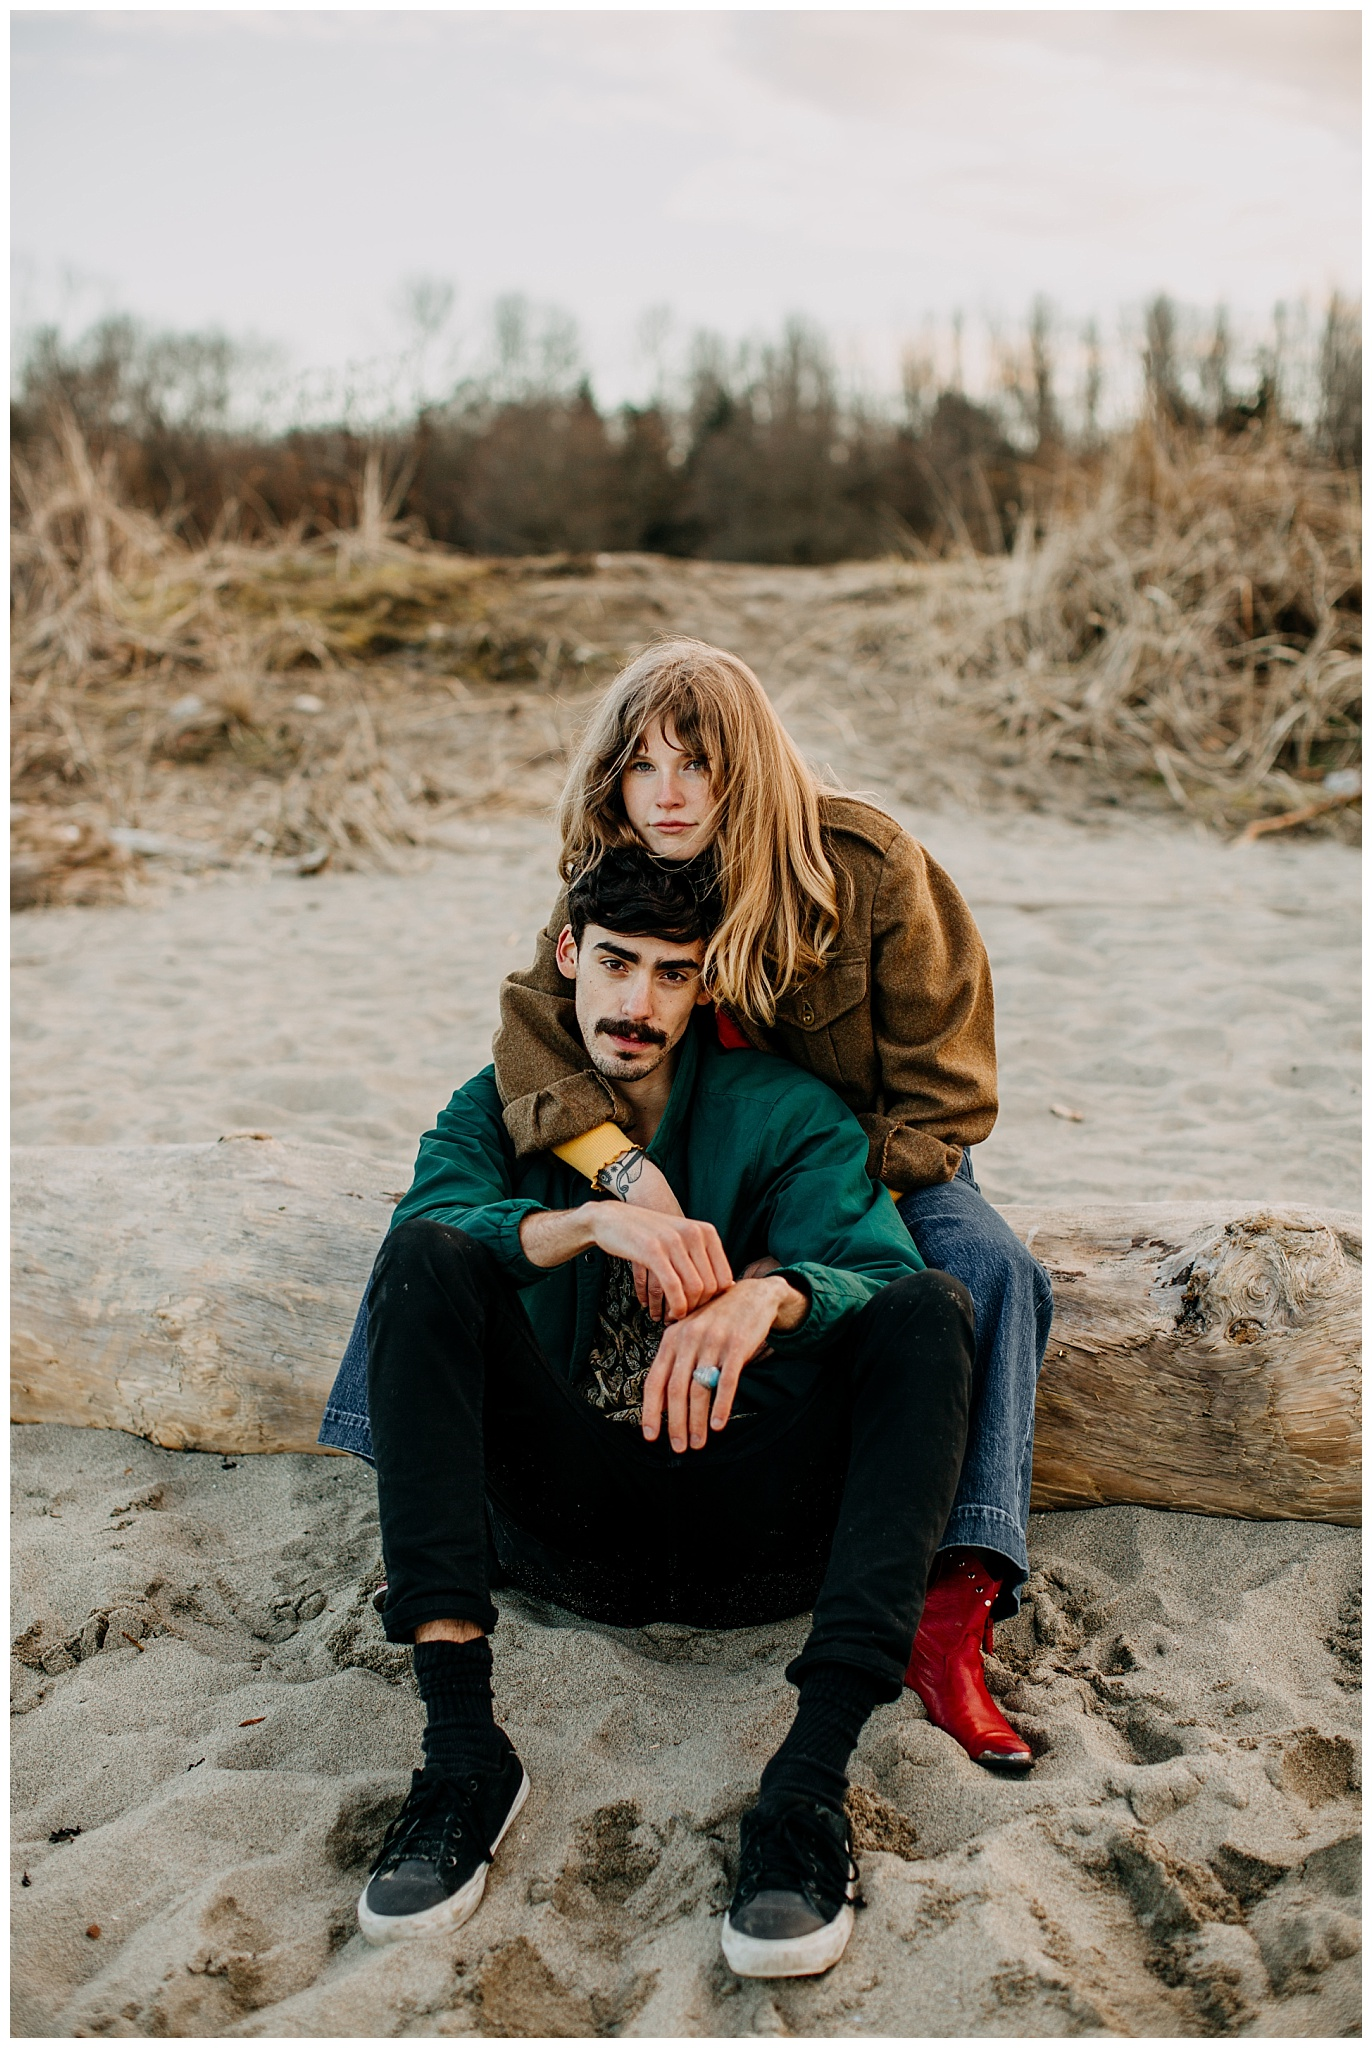 editorial 70s inspired engagement session at jericho beach vancouver